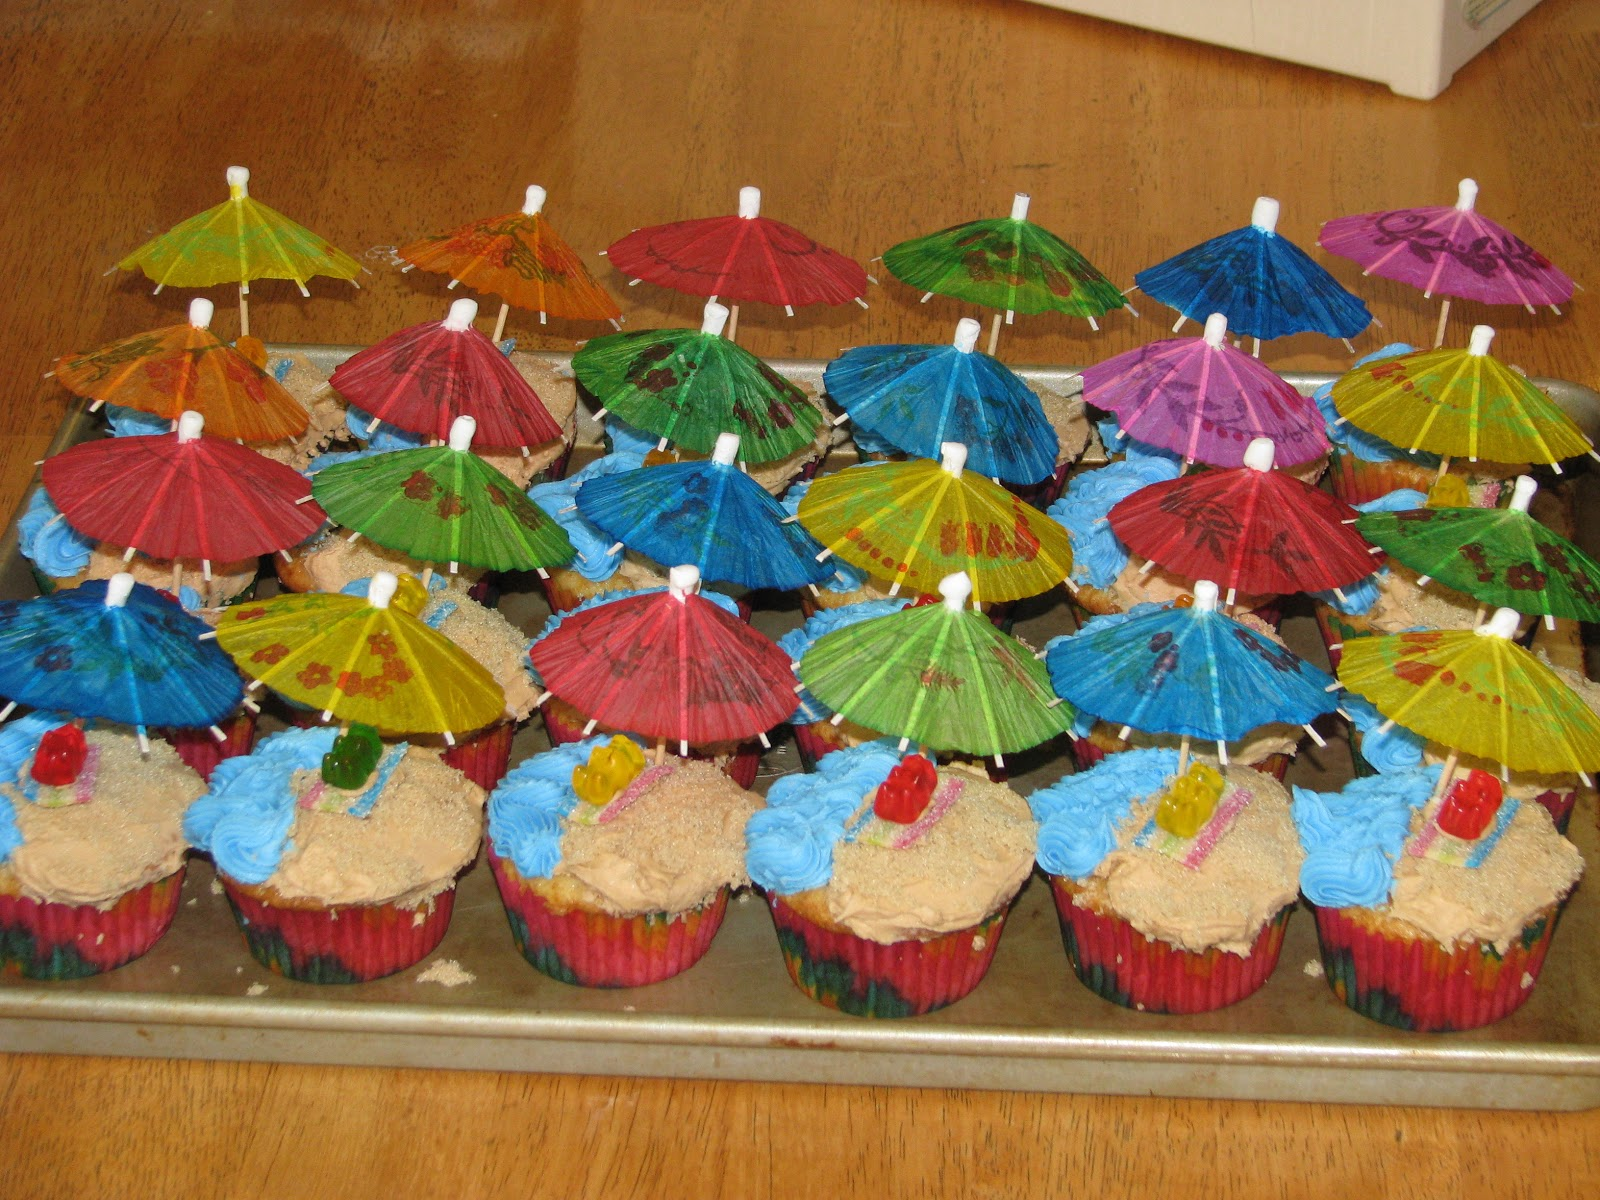 Cool Easy Cake Decorations Beach Themed Cupcakes For The End Of Schoolyear